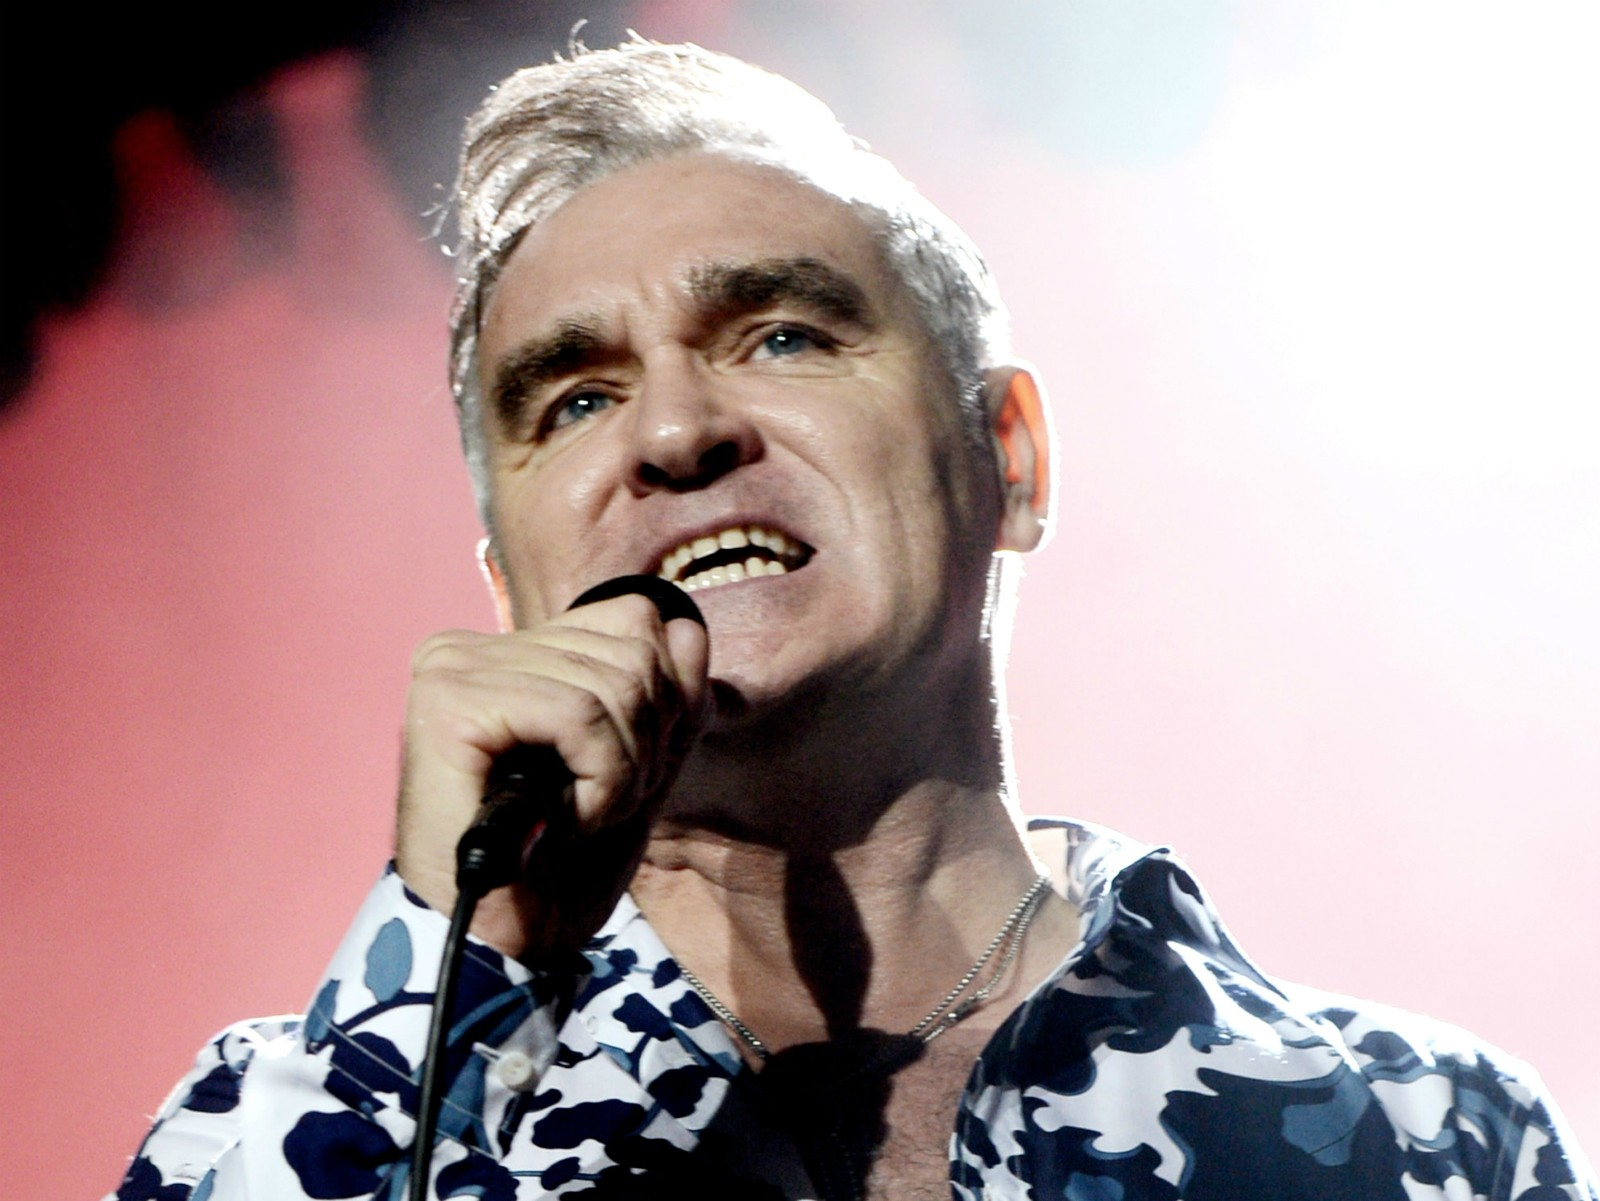 """O Brit Awards é horroroso. Eu jamais aceitaria um. Seria como Laurence Olivier ficar feliz por ganhar o TV Times Awards"" — Morrissey, cantor e vocalista da extinta banda The Smiths, de acordo com coletâneas de frase do músico. (Foto: Getty Images)"